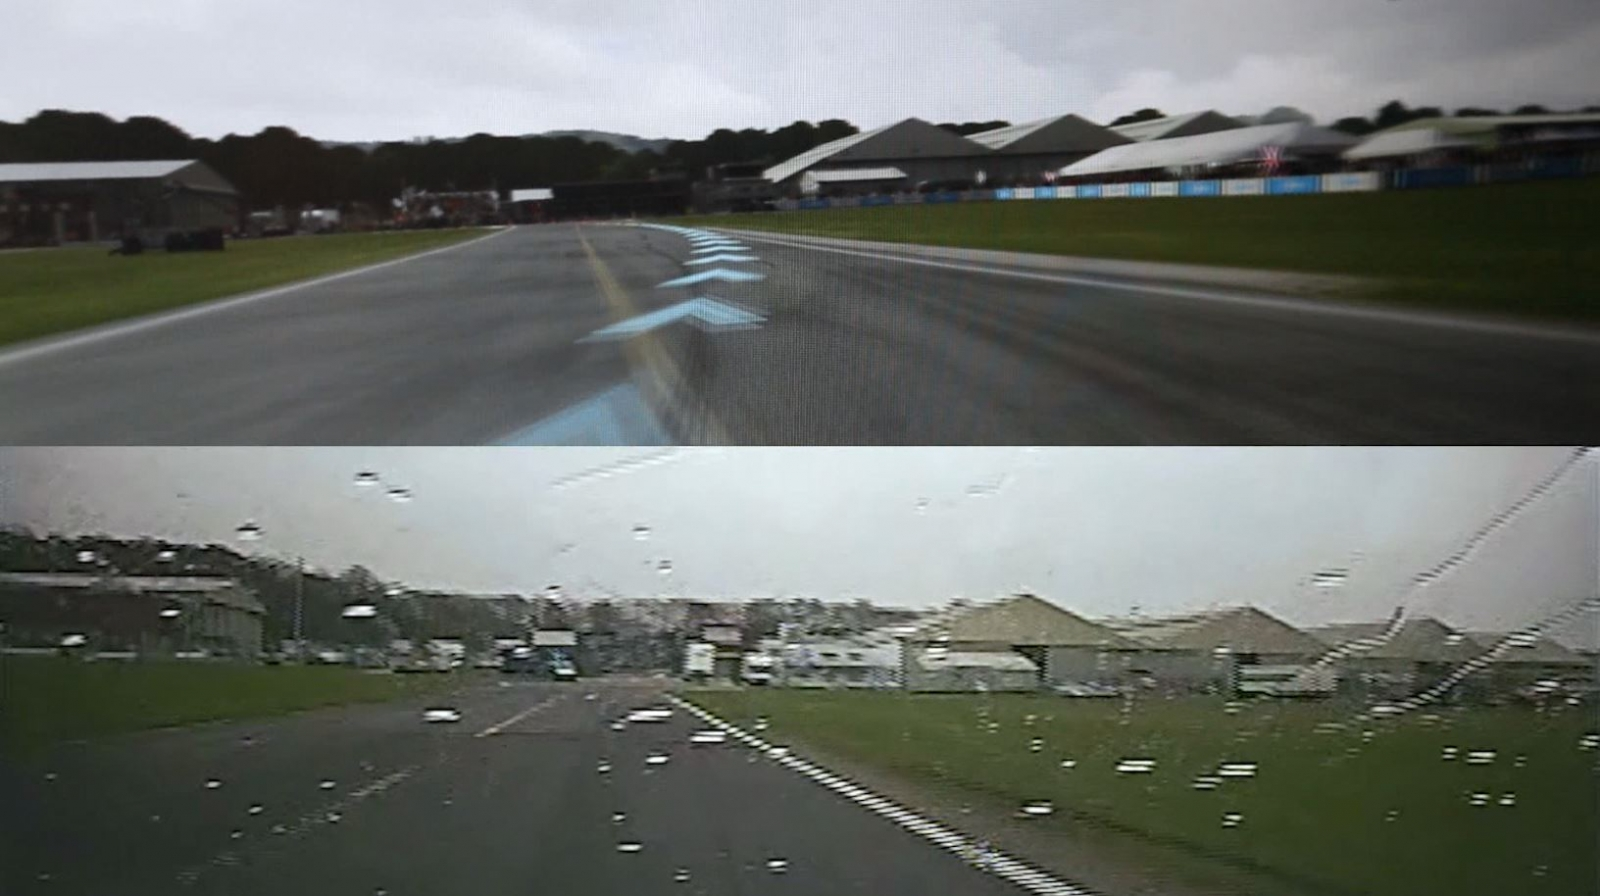 Top Gear track